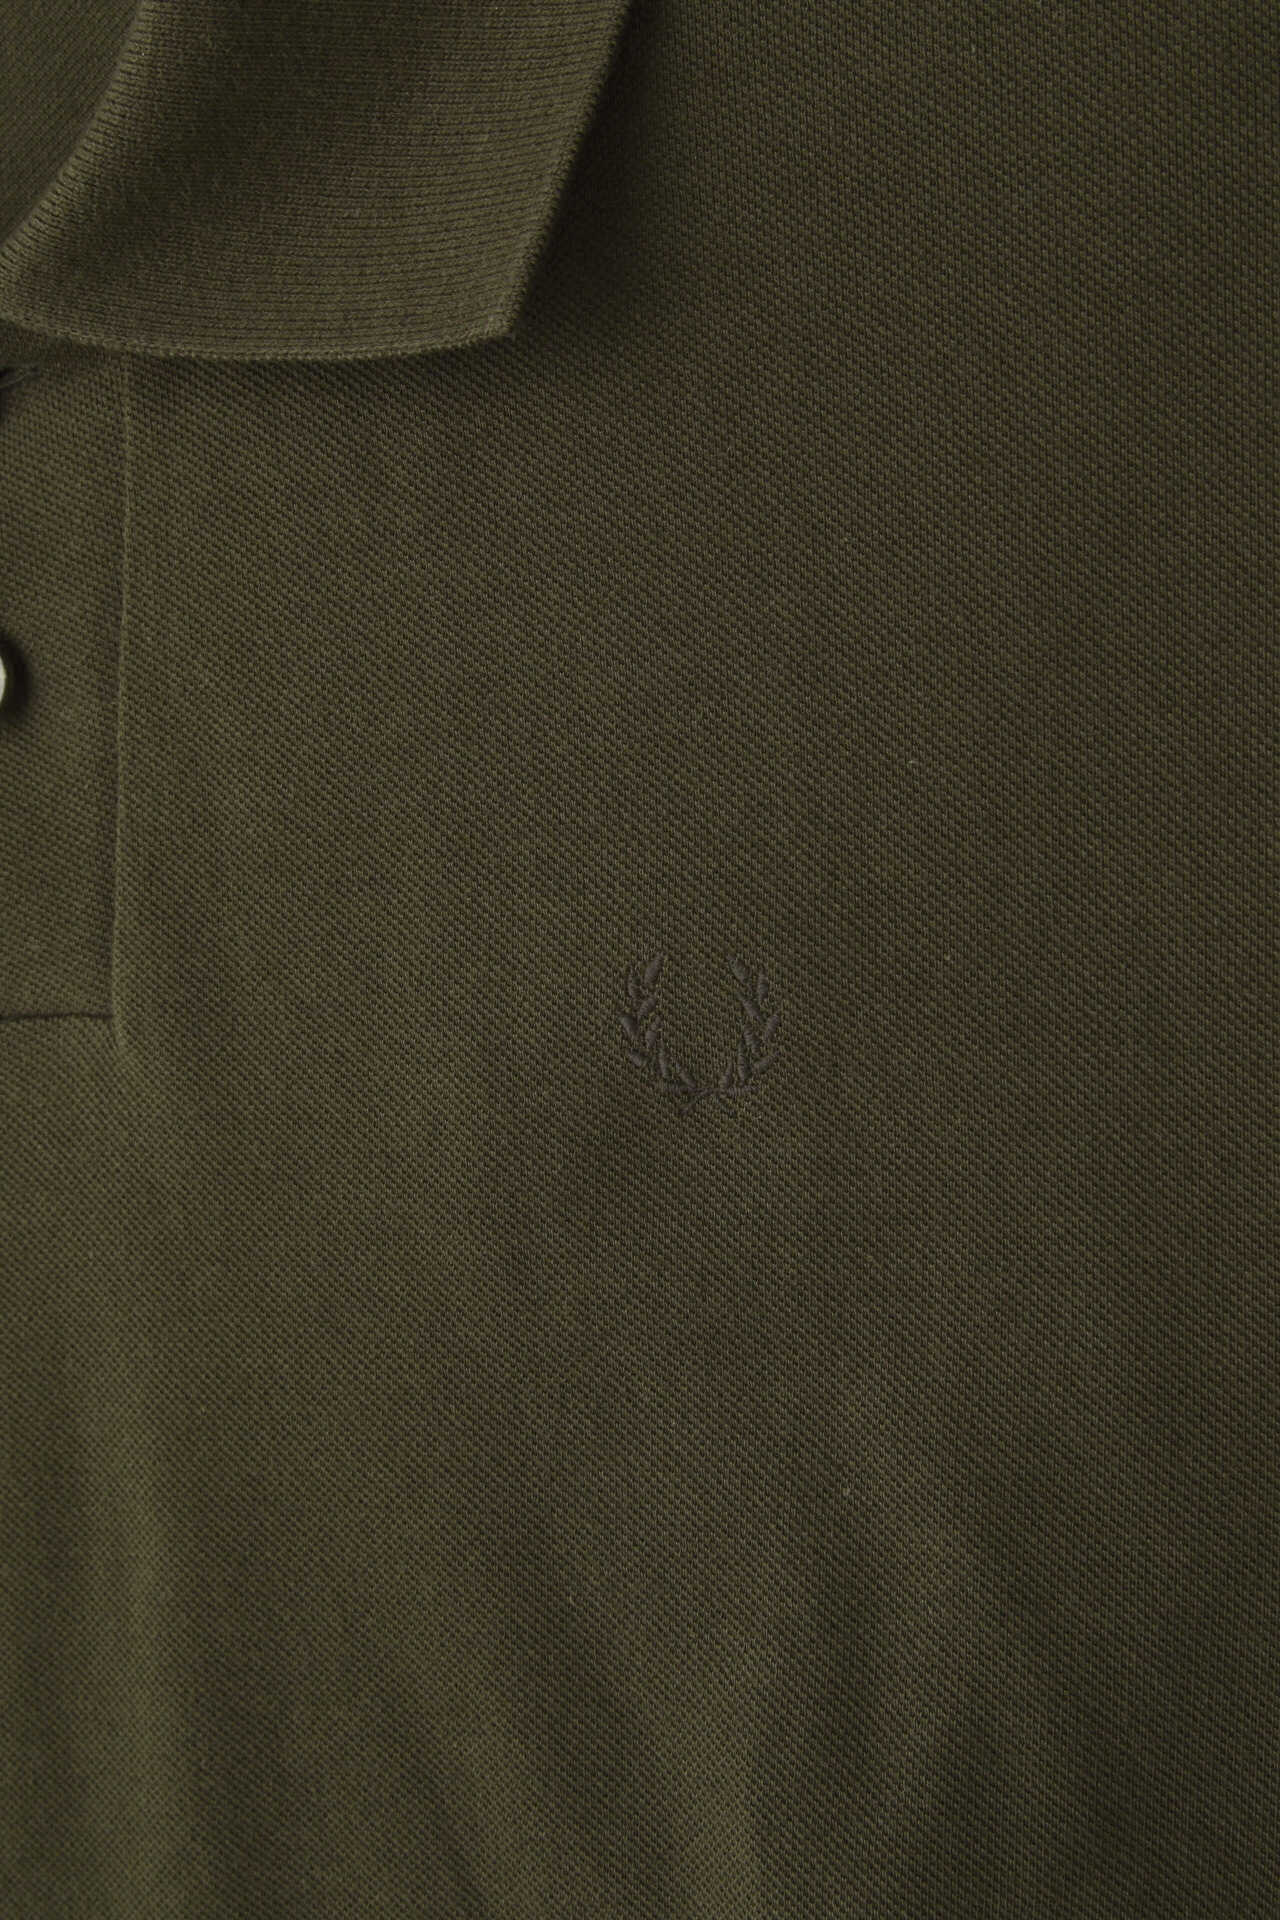 SOFT COTTON PIQUE(FRED PERRY FOR MARGARET HOWELL)13